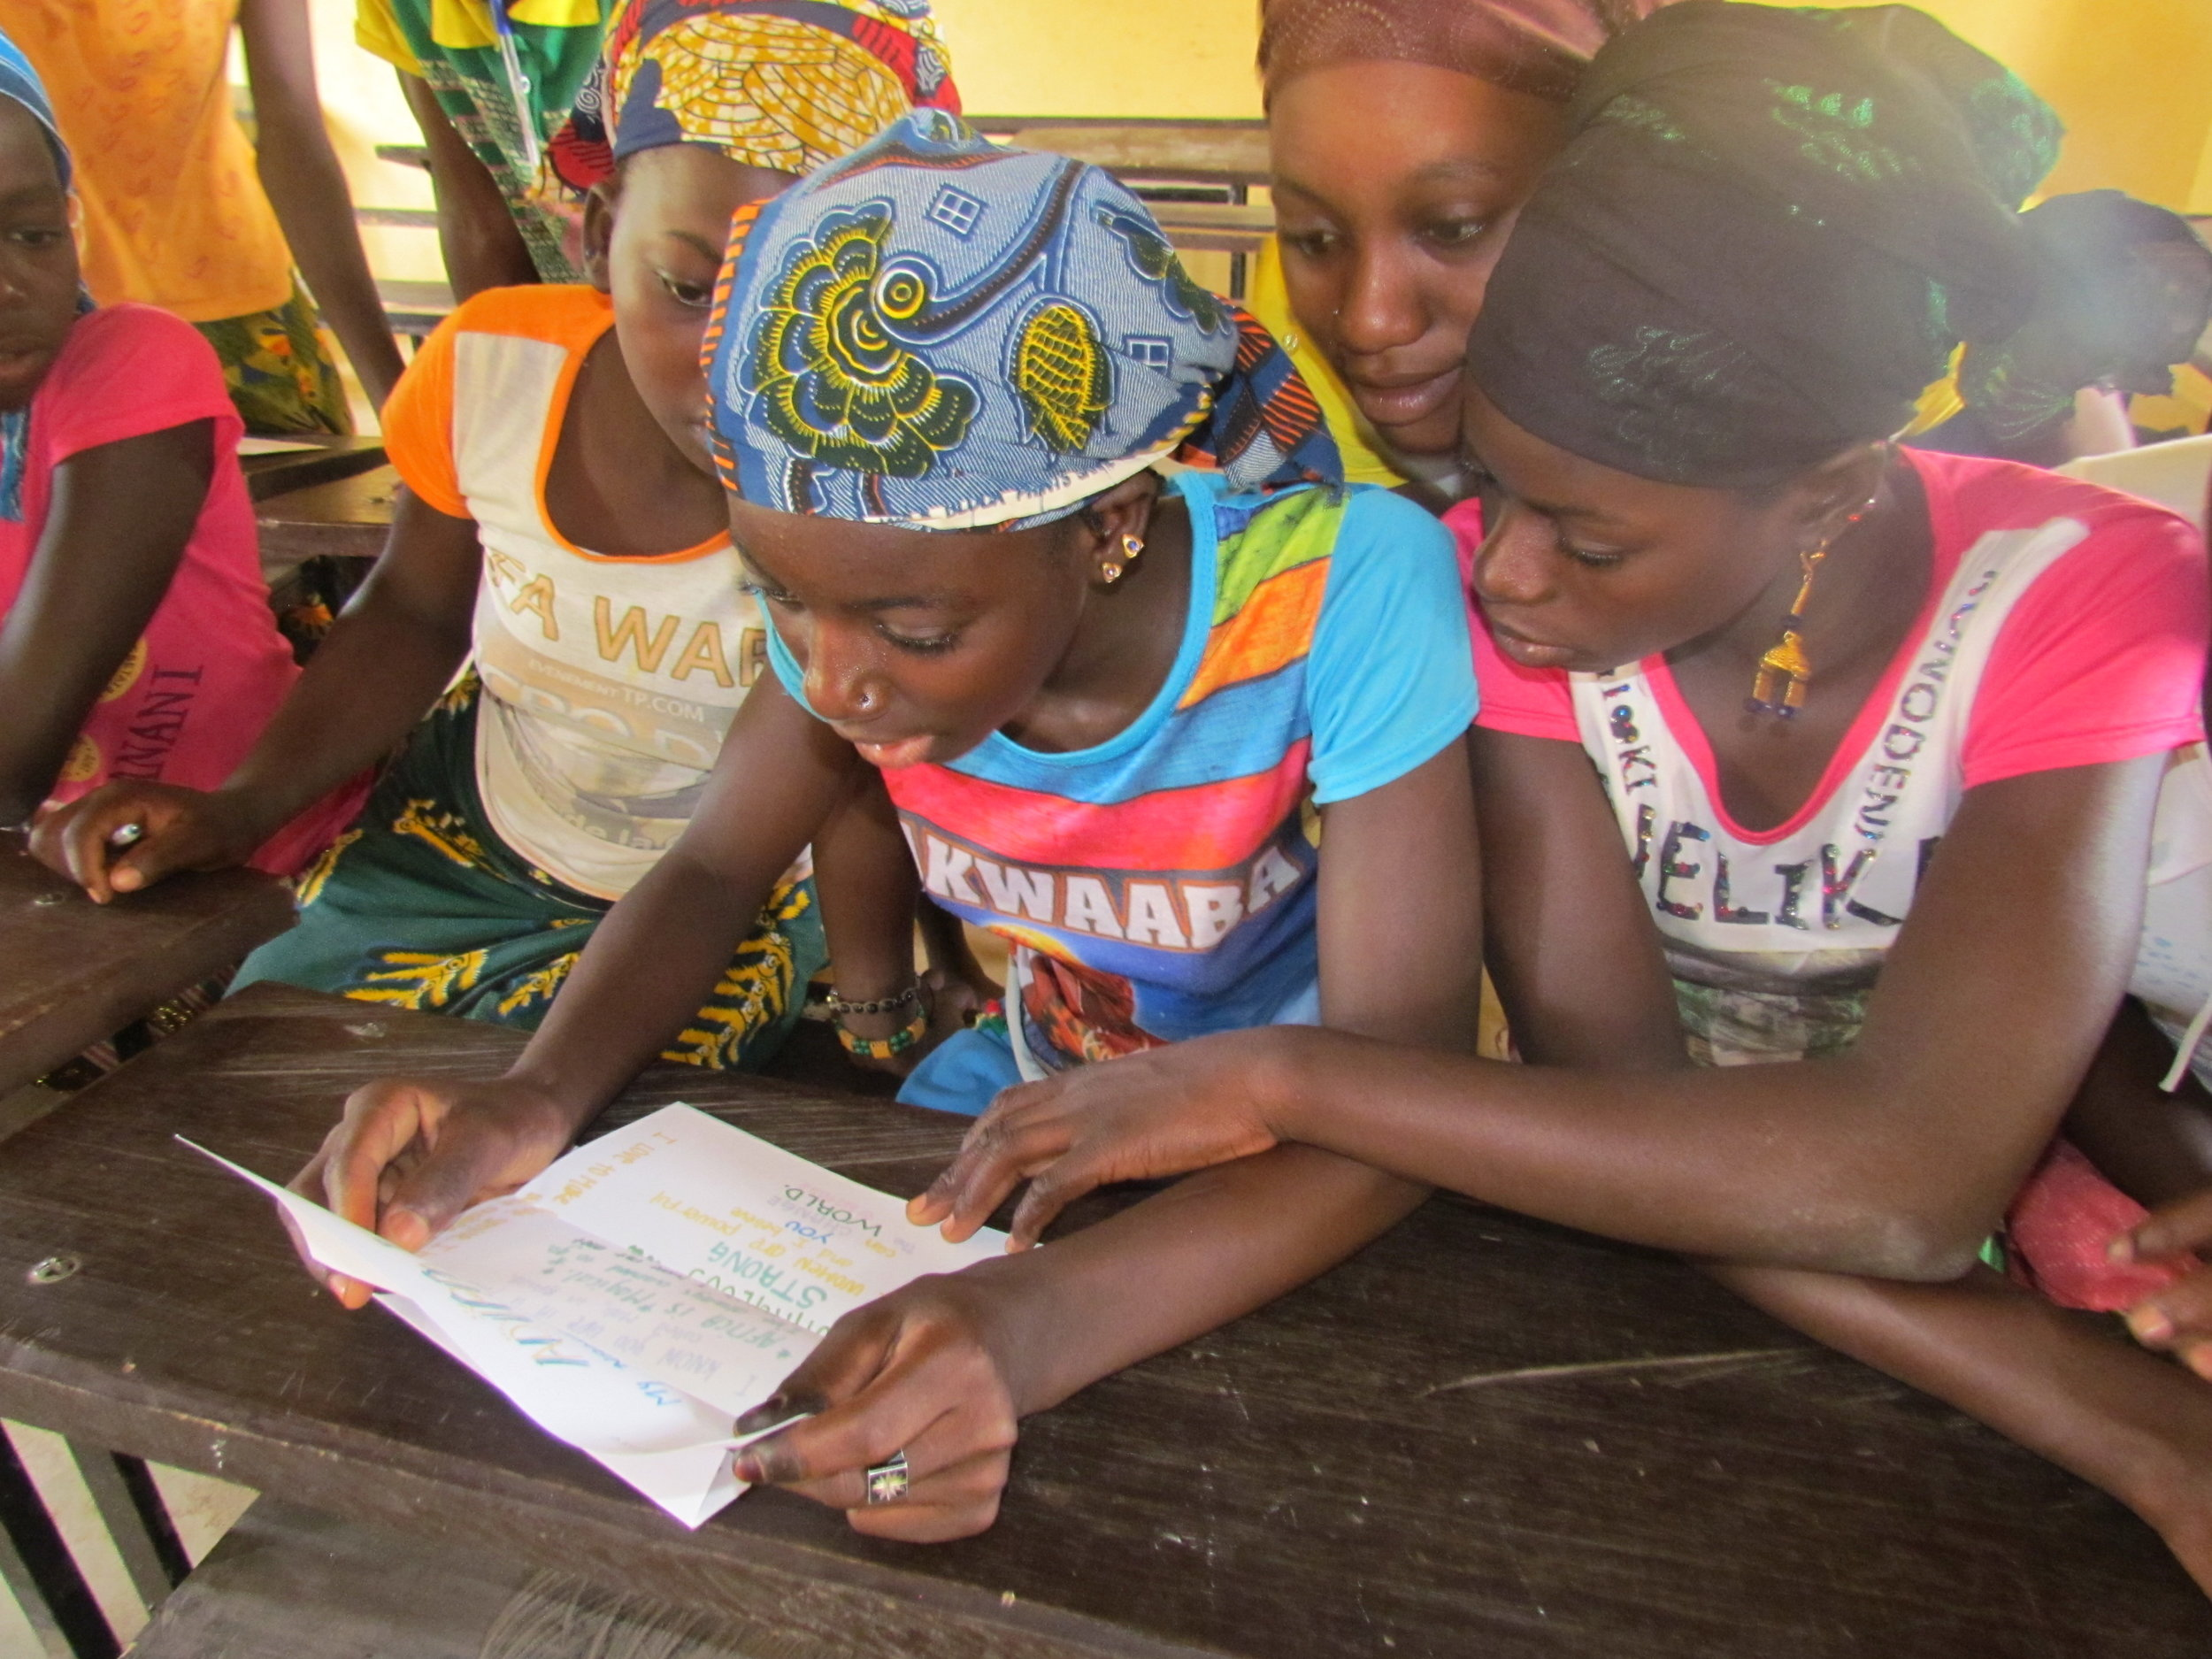 Girls Project participants in Kolimba share the excitement of reading letters of encouragement from U.S. Girl Scouts.